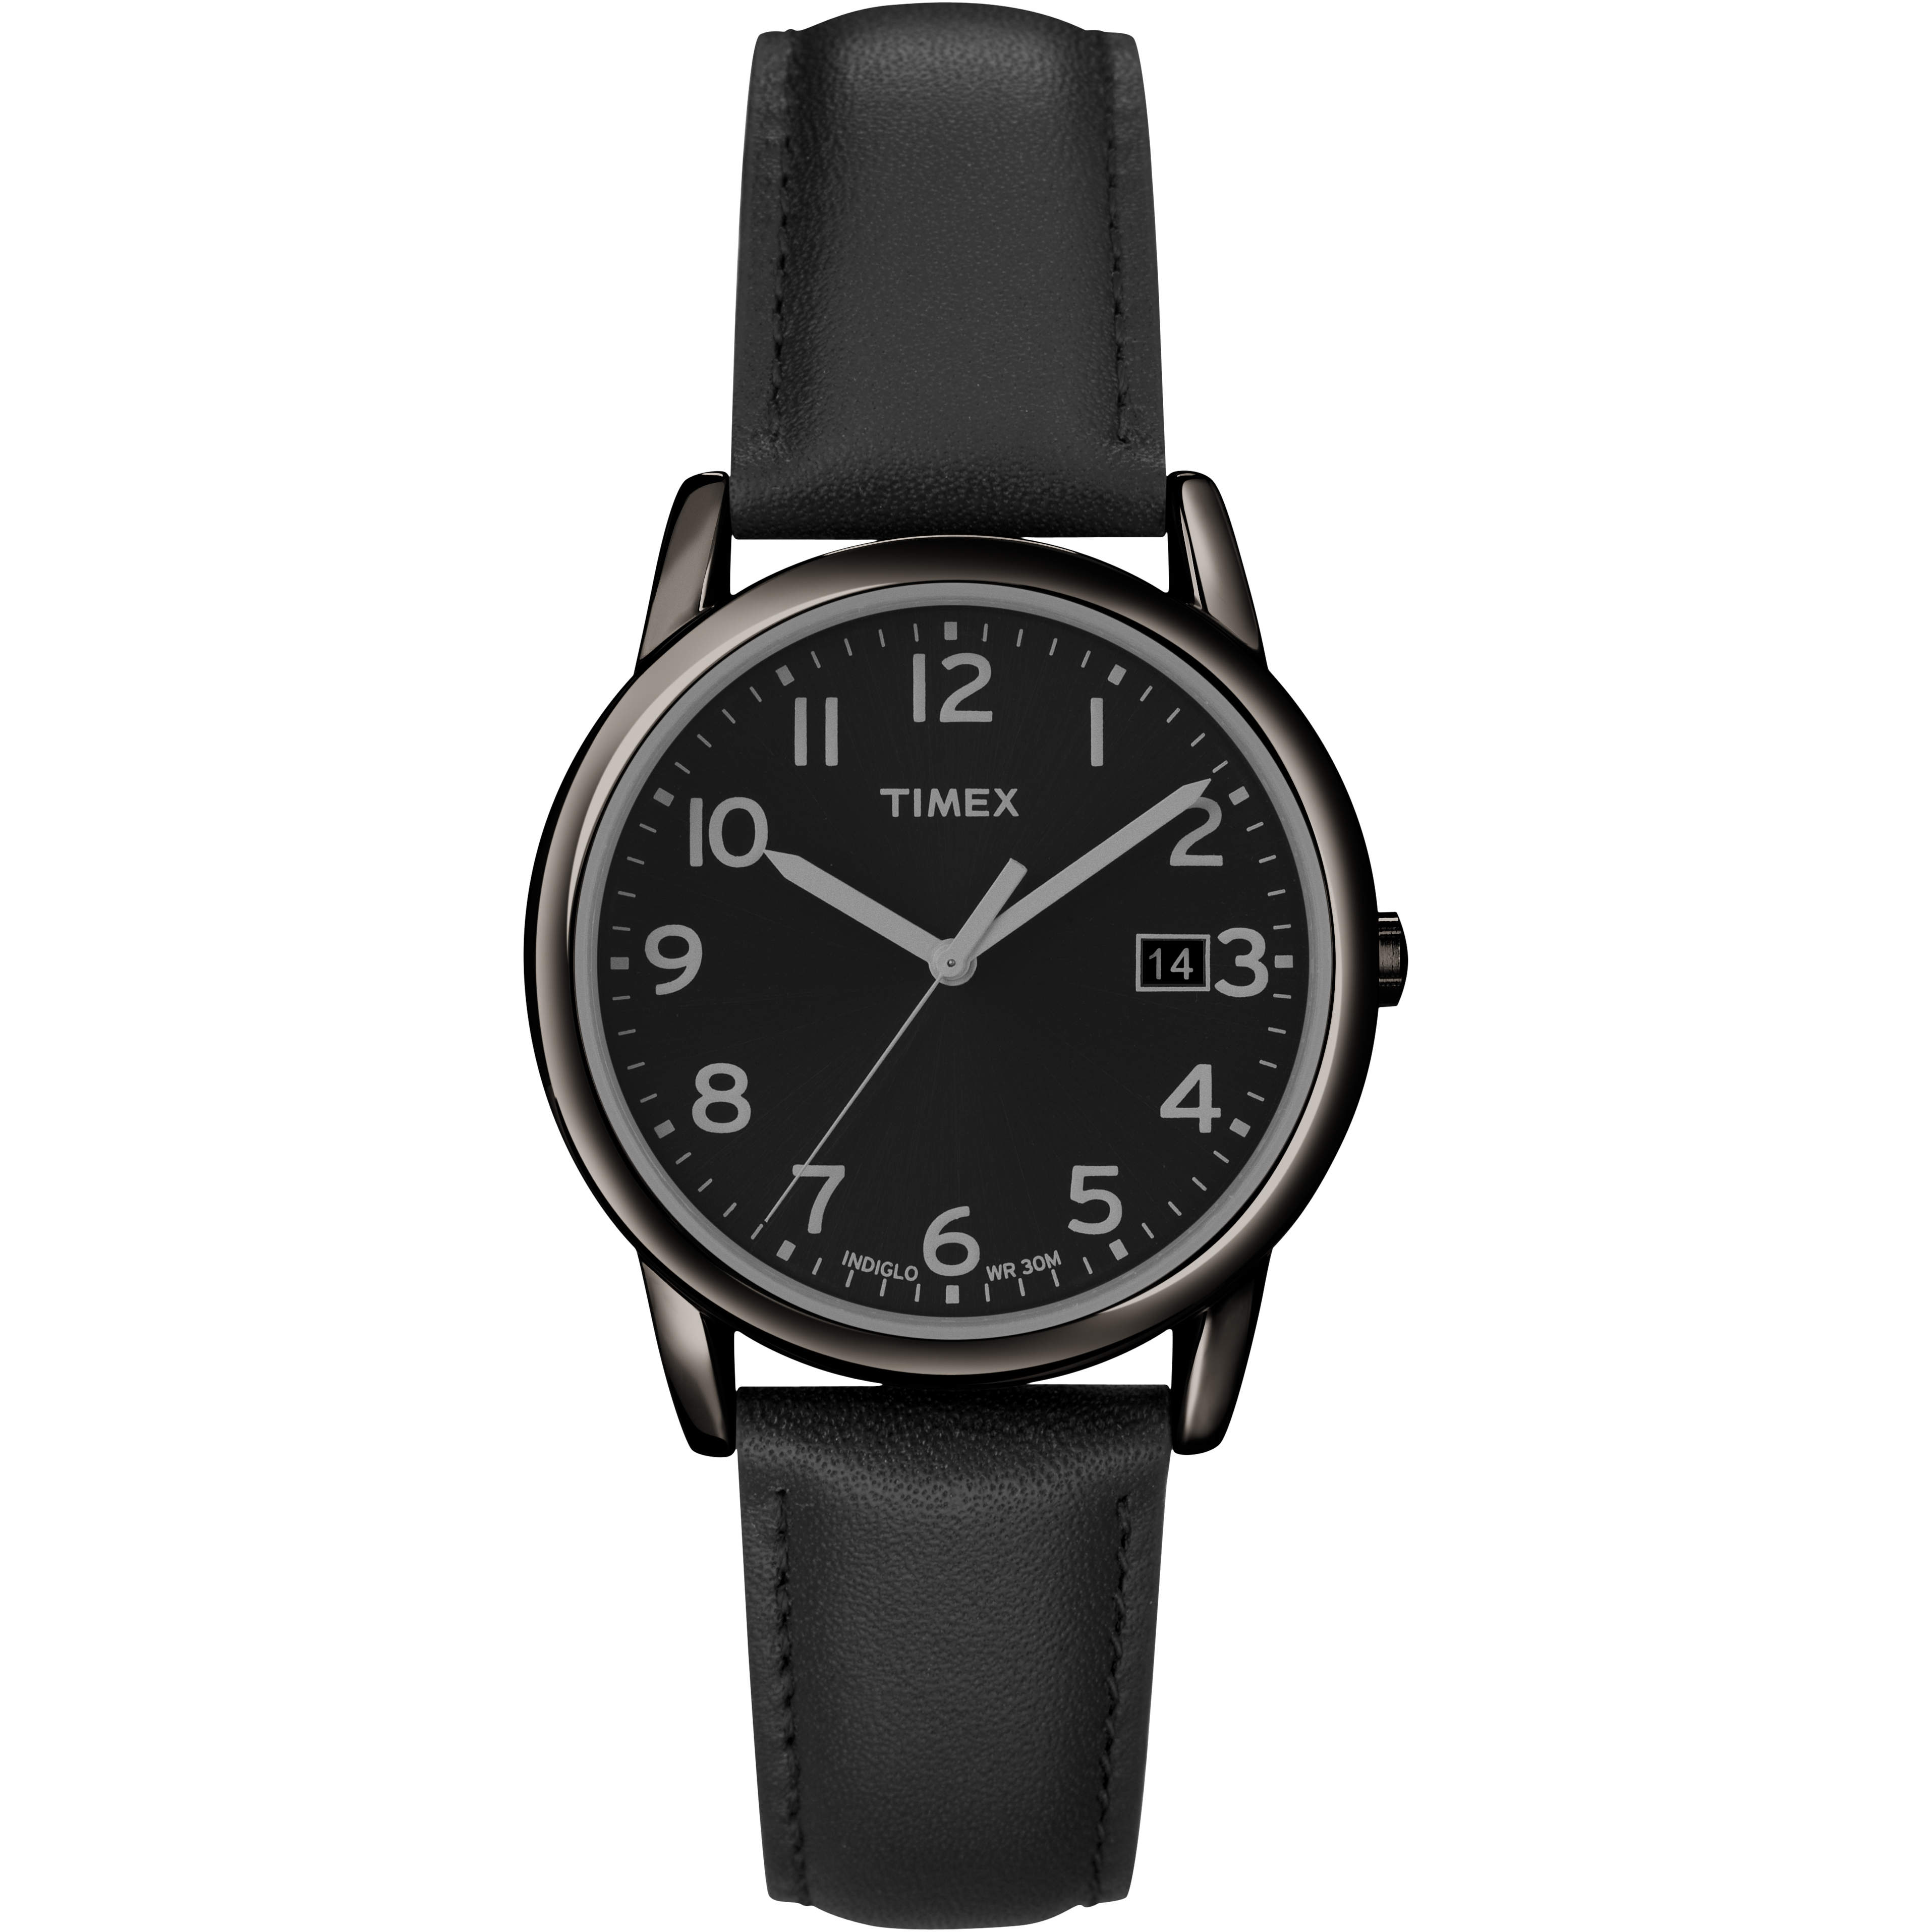 Timex Men's South Street | Leather Band White Dial Indiglo Casual Dress Watch Timex